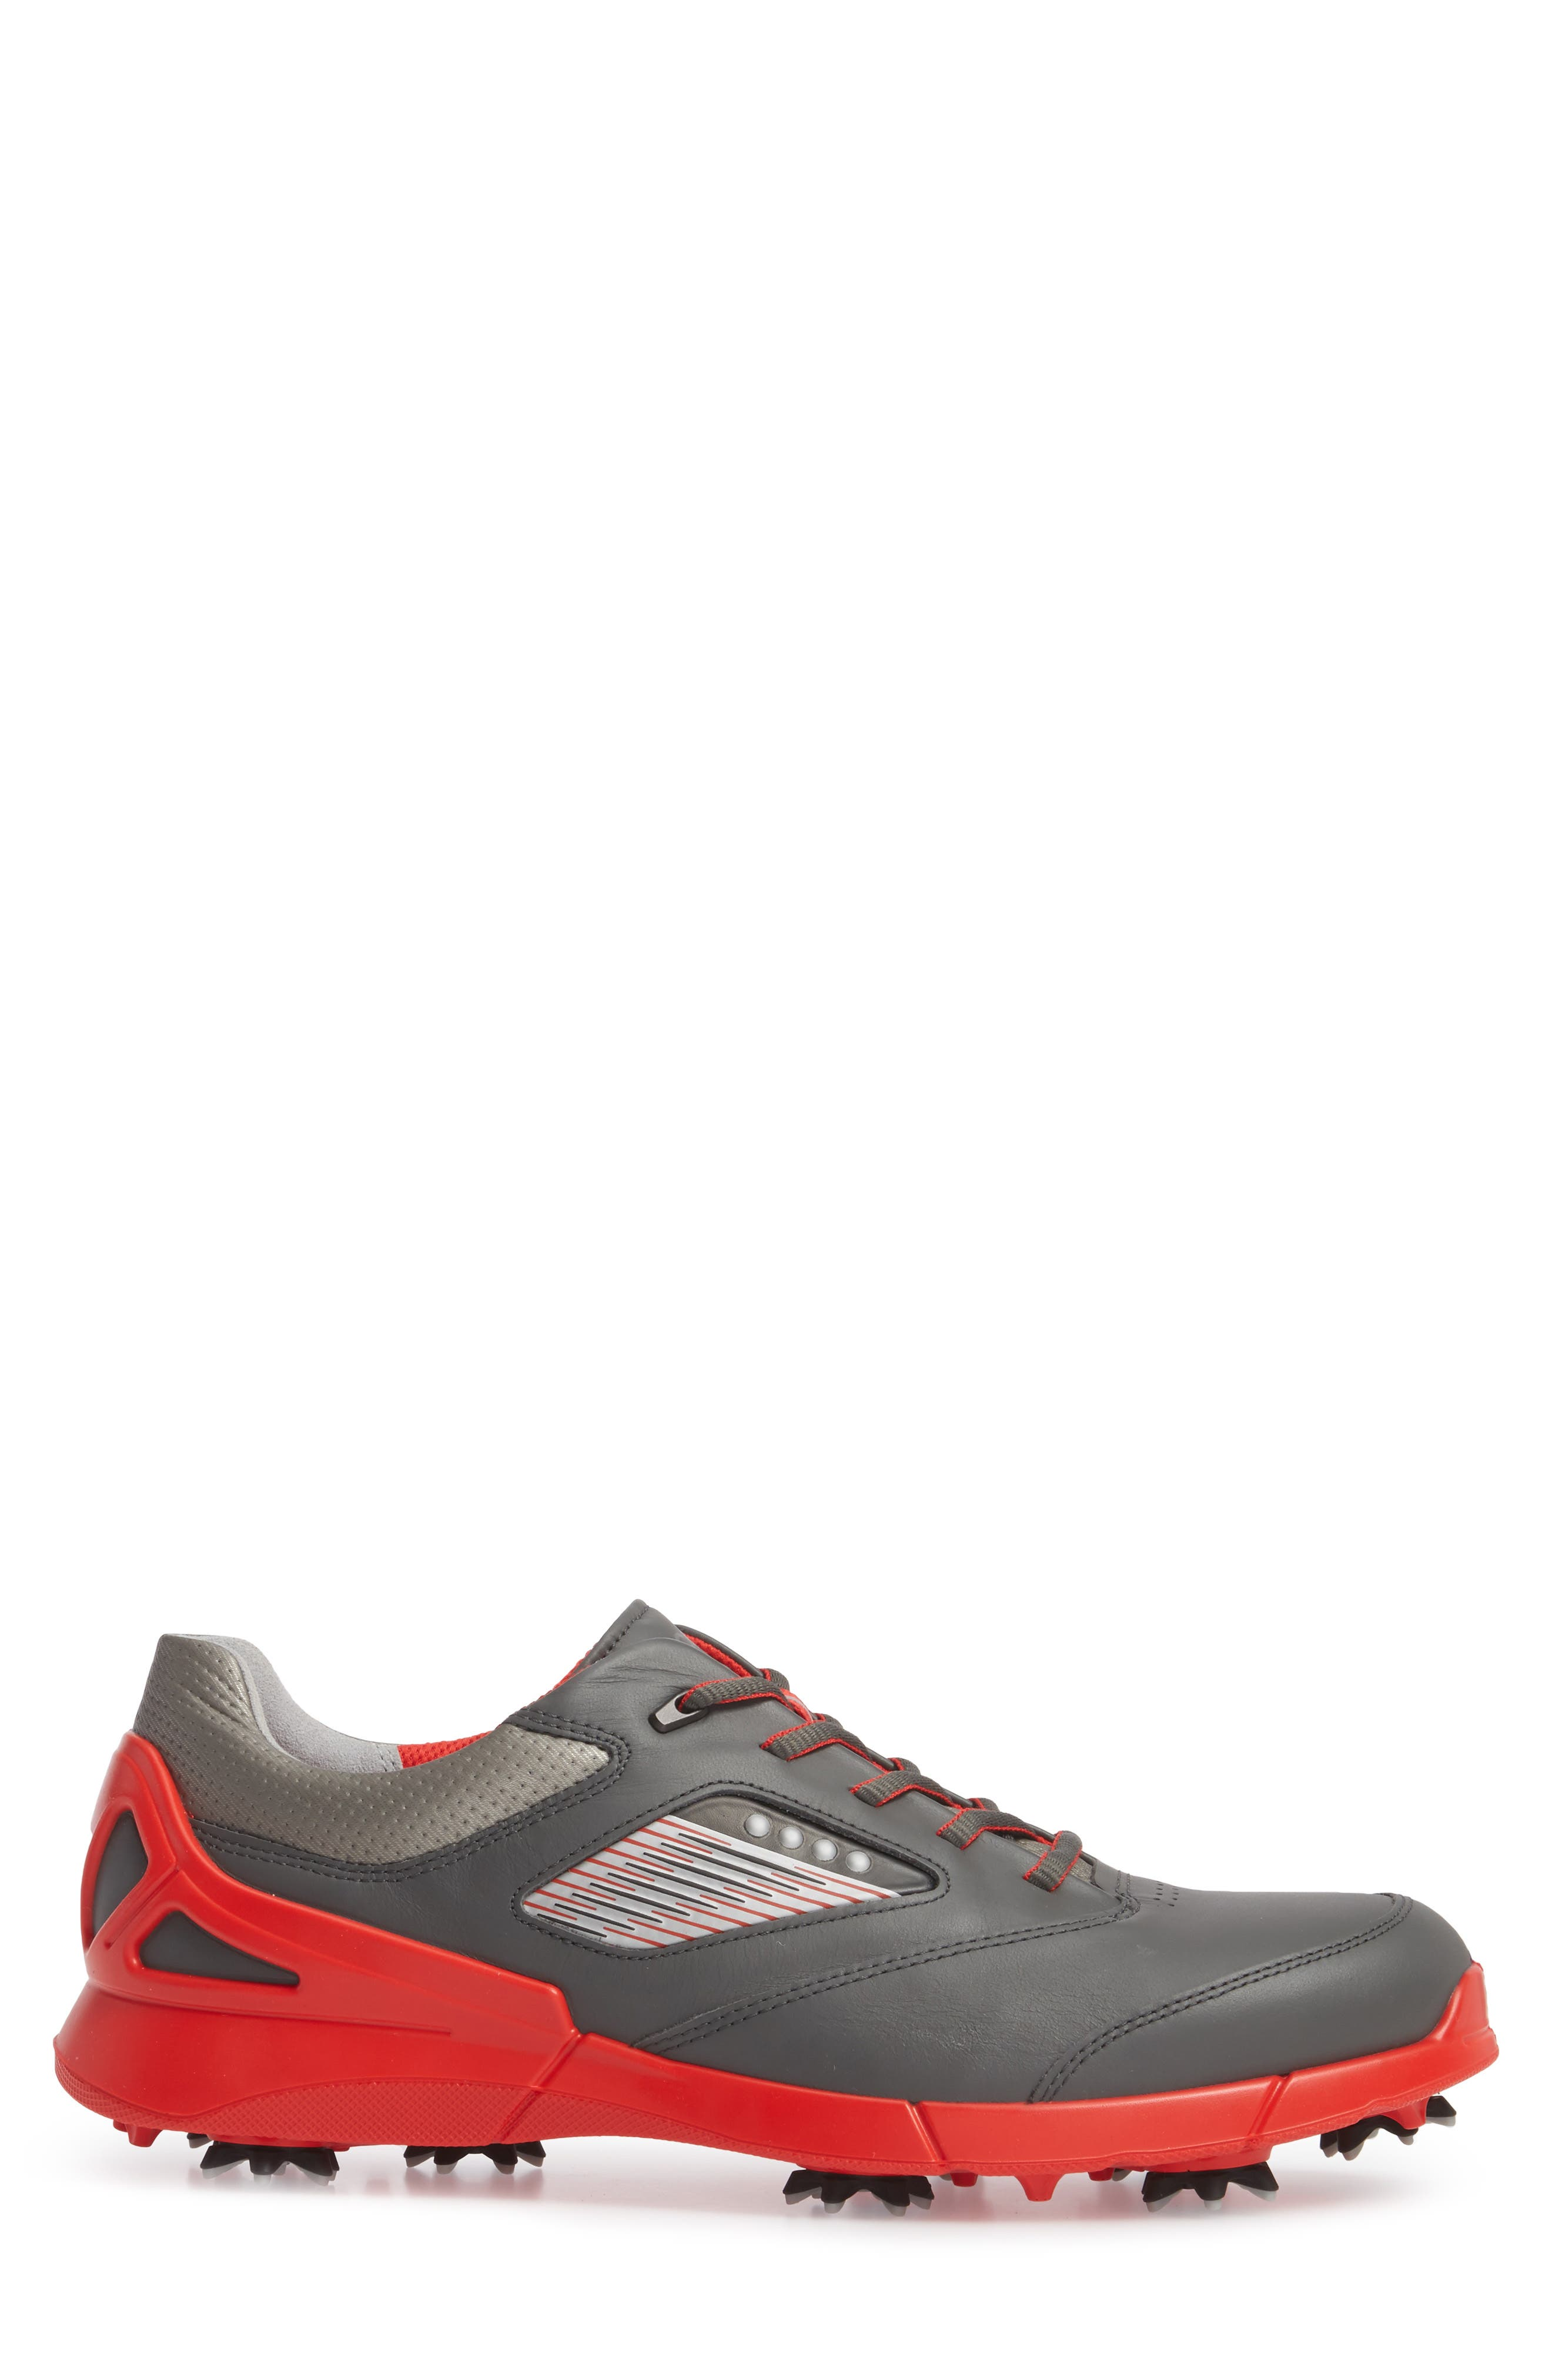 Base One Golf Shoe,                             Alternate thumbnail 3, color,                             BLACK/ SCARLET LEATHER